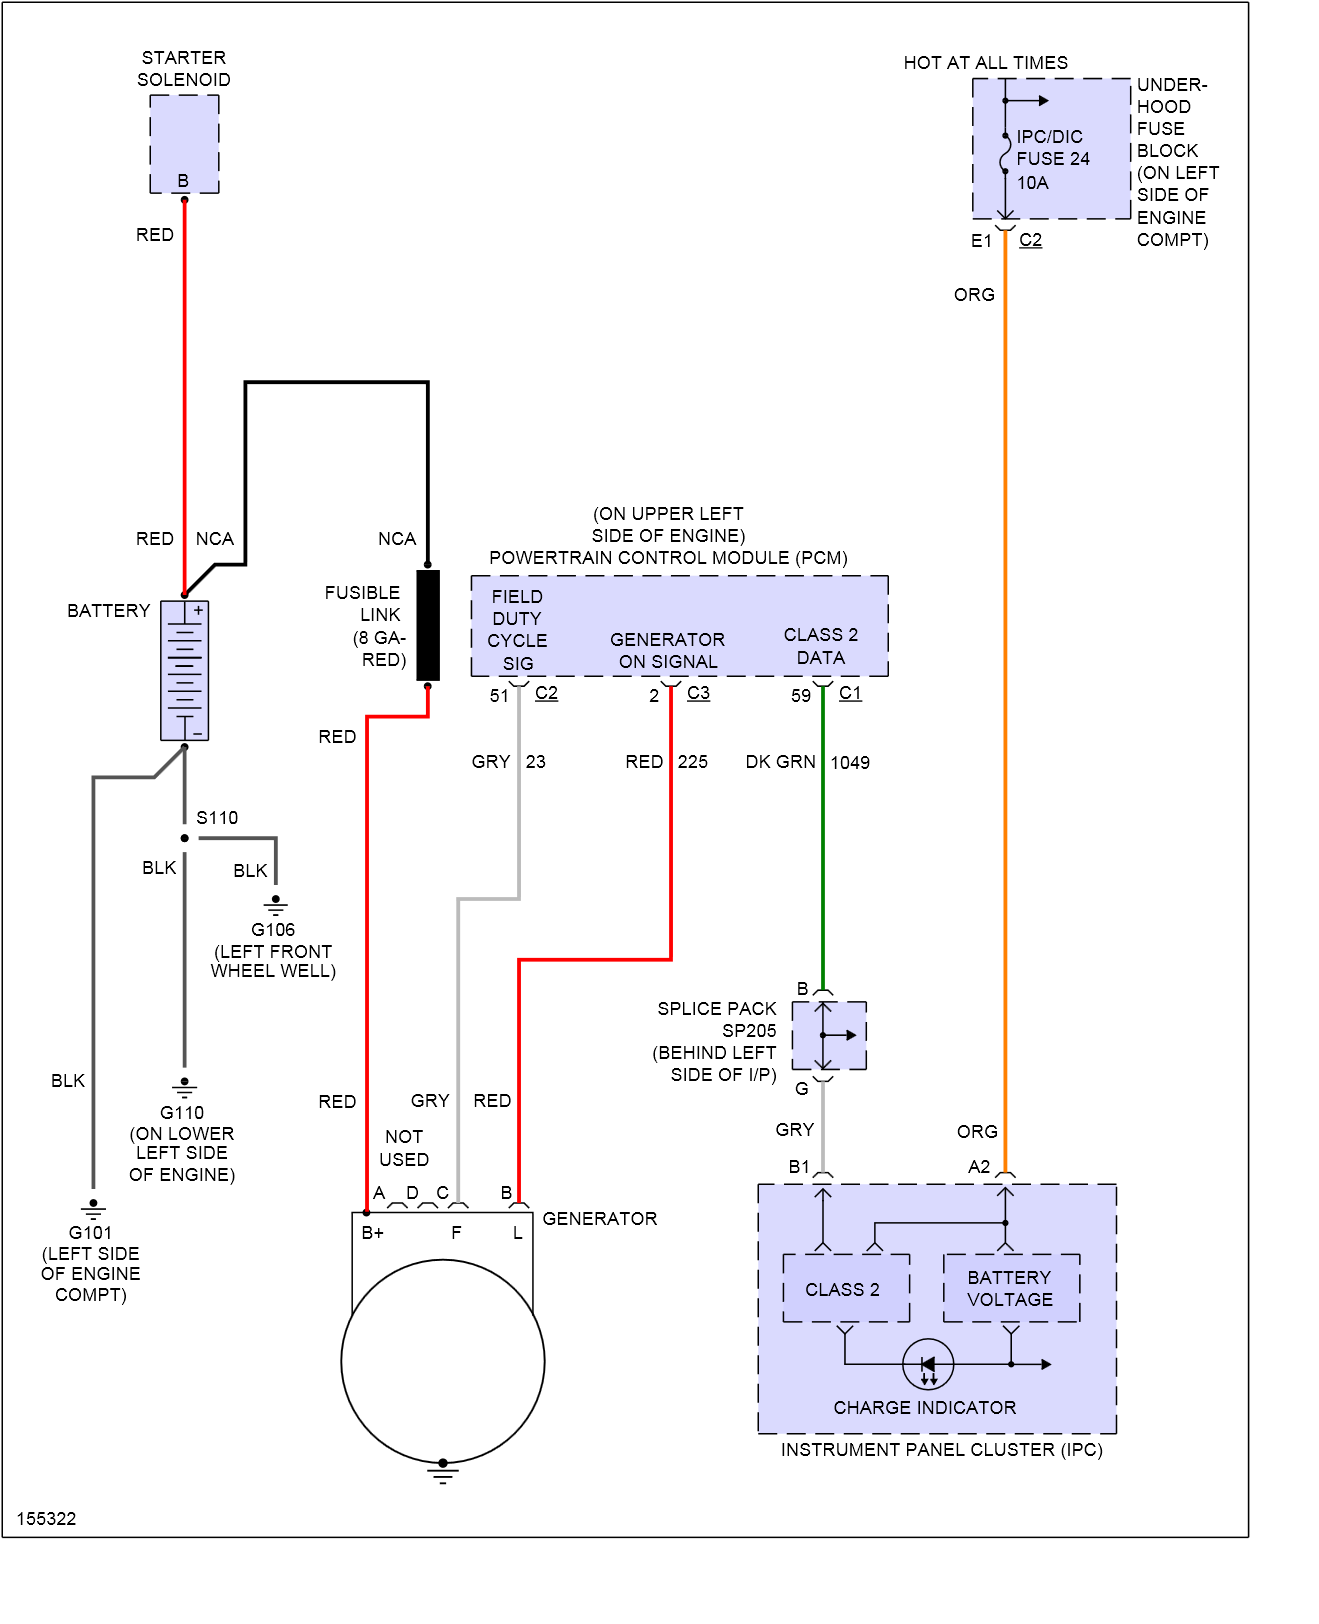 chevy charging system wiring diagram - wiring diagram proportion -  proportion.salatinosimone.it  salatinosimone.it